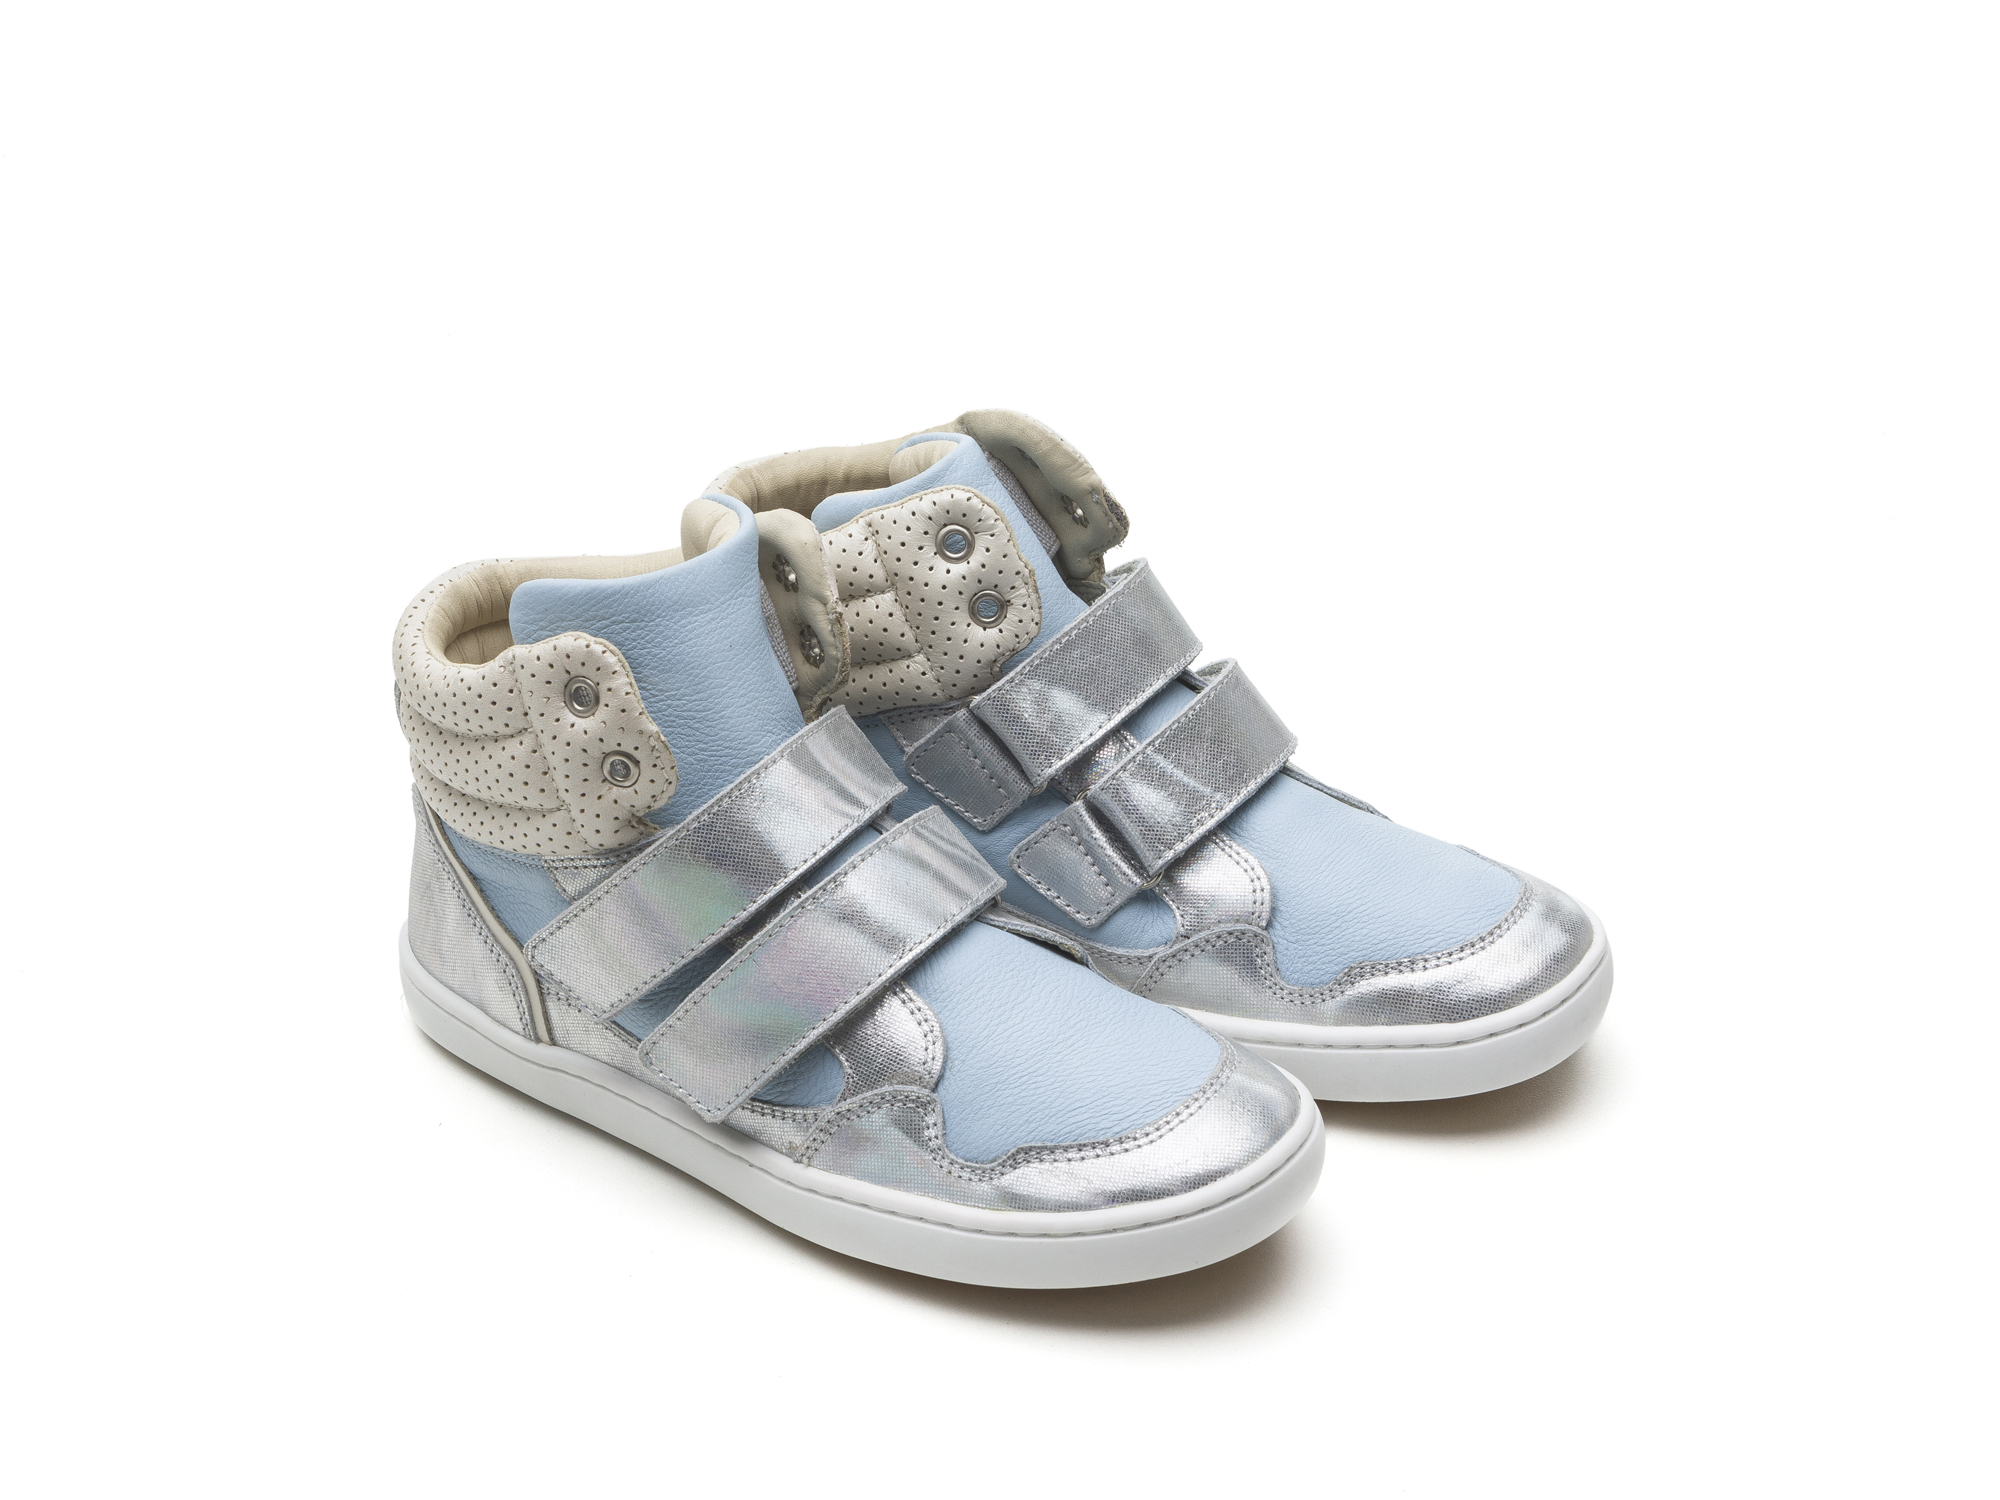 Bota Edge Sea Sparkle/ Baby Blue Junior 4 à 8 anos - 0